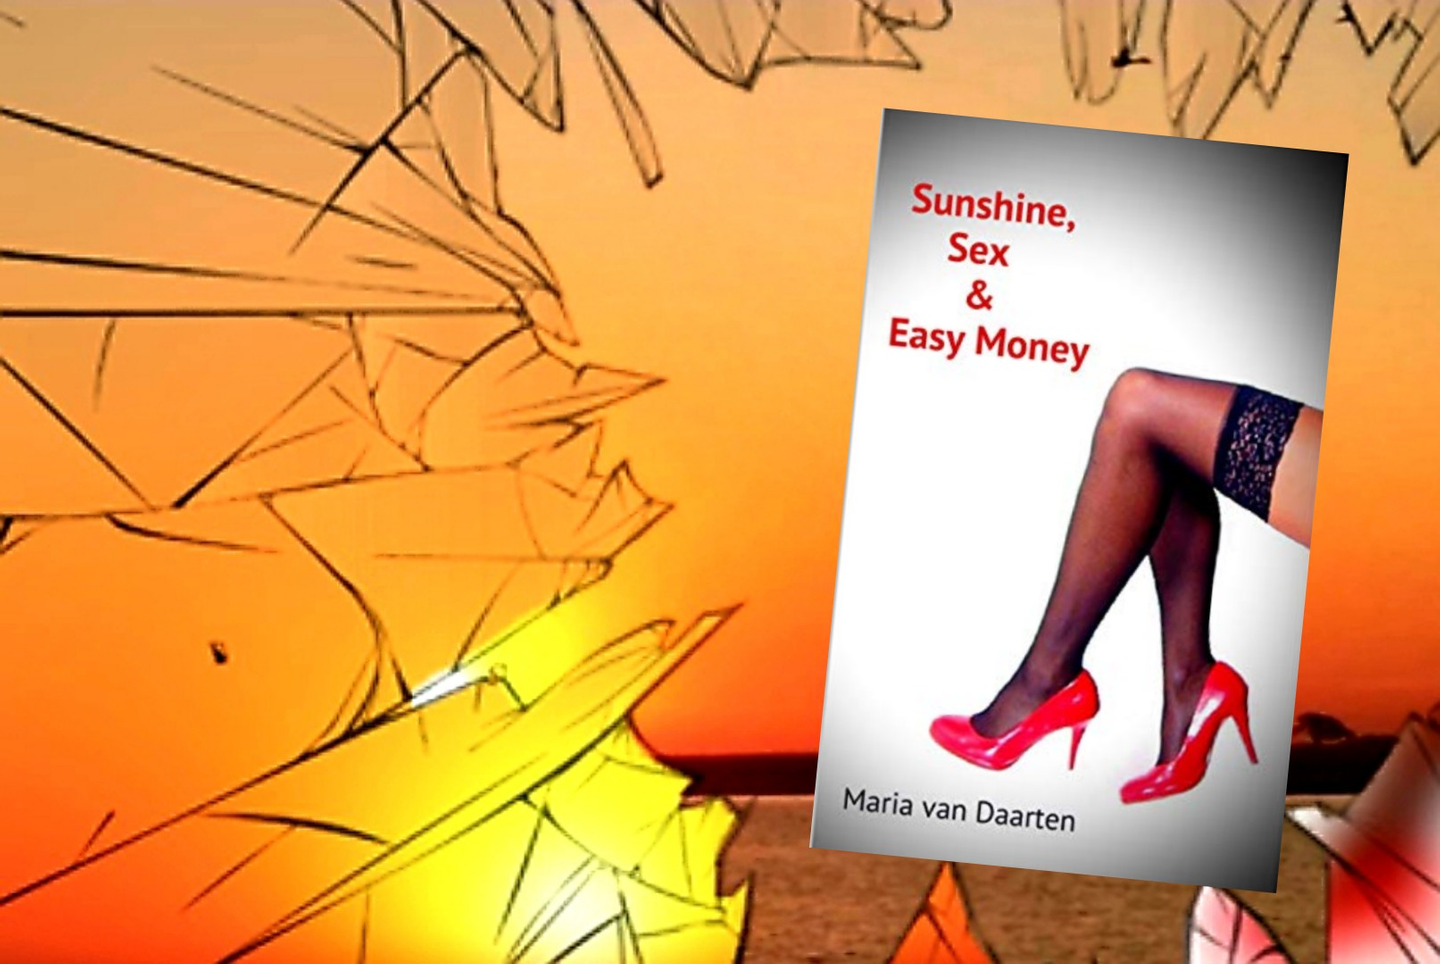 Chapter 4: Sunshine, Sex and Easy Money